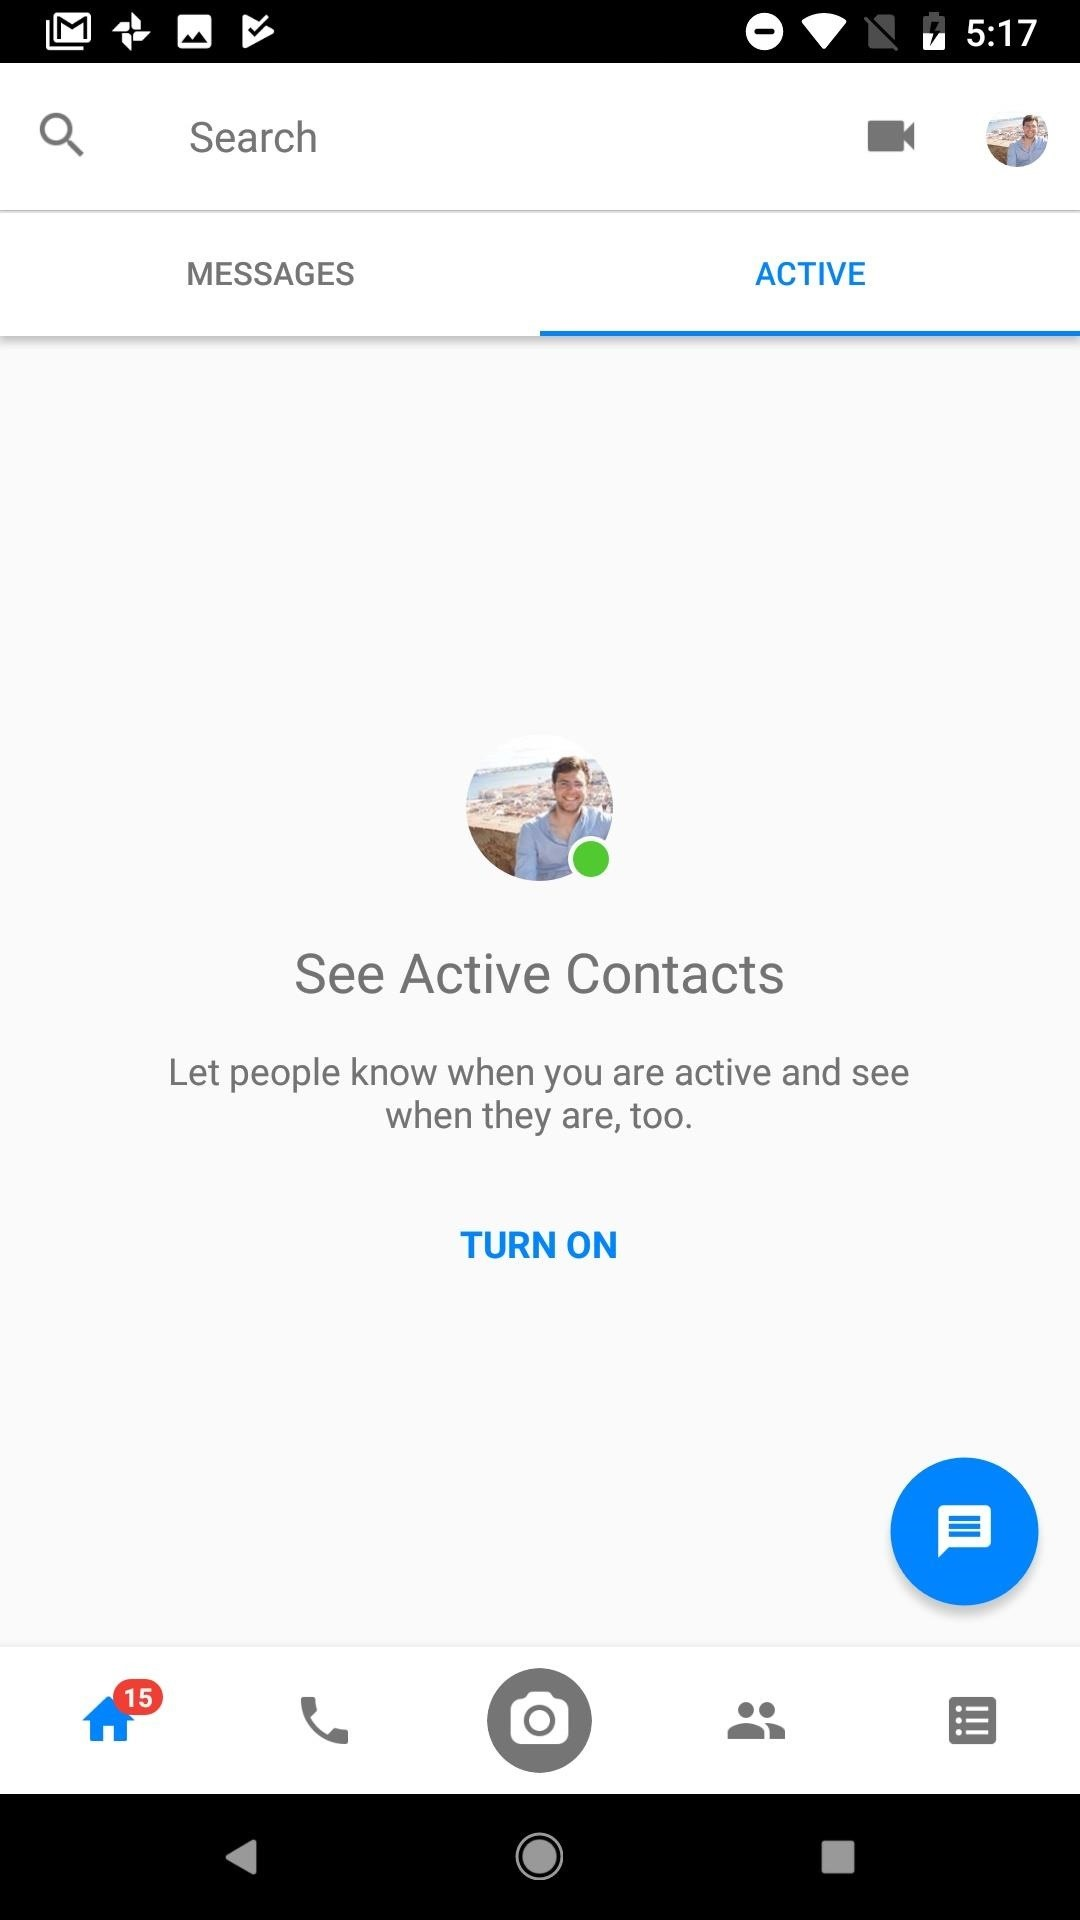 Facebook Messenger 101: How to Hide Your 'Active' Status to Go Incognito Online